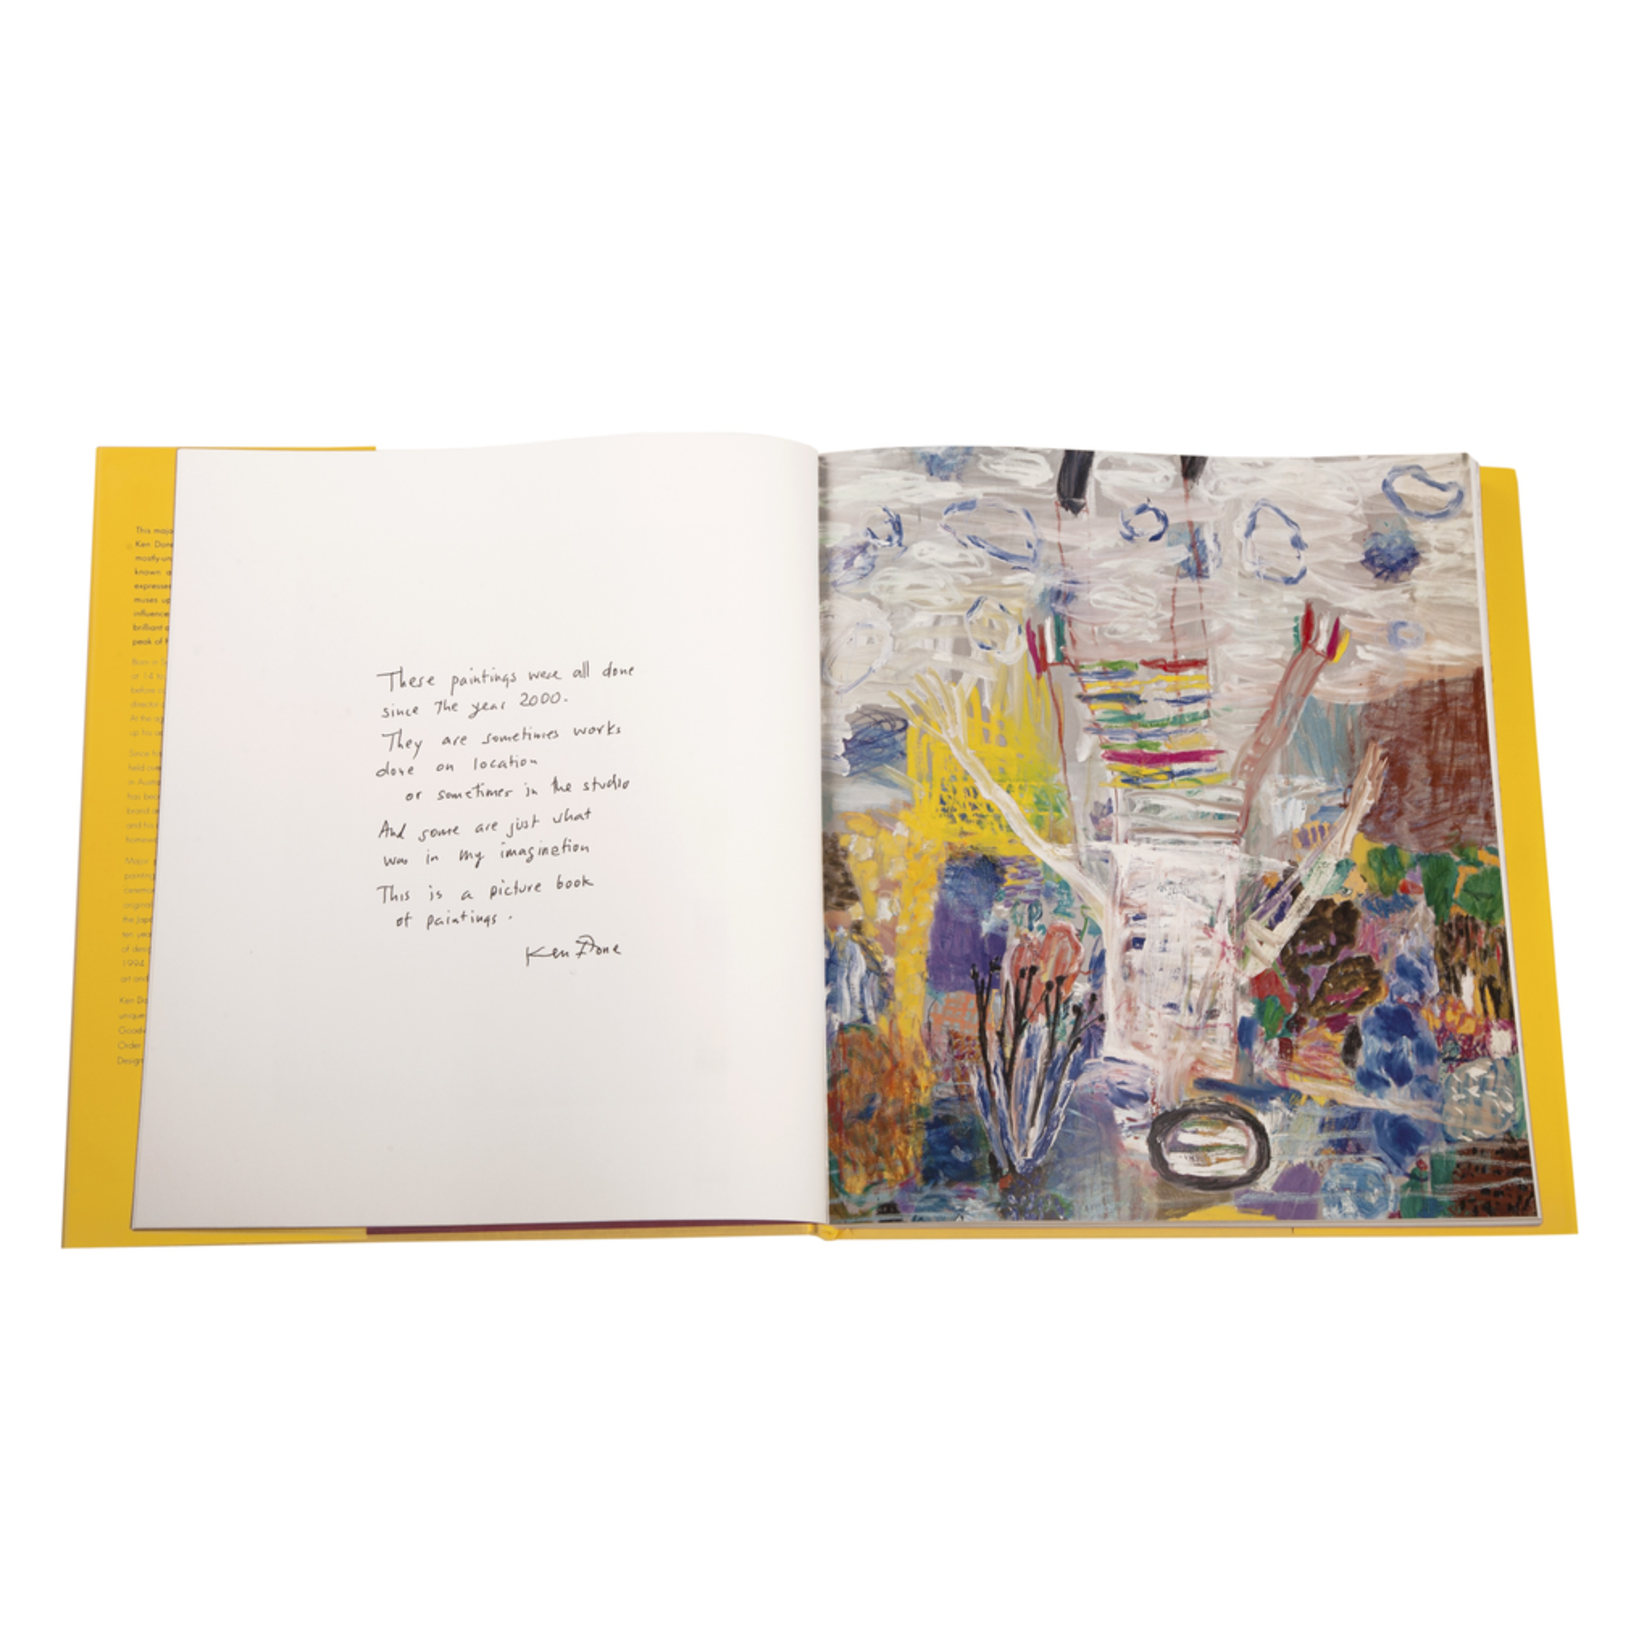 Books & Stationery Book - Ken Done: Paintings You Probably Haven't Seen - Hardcover book